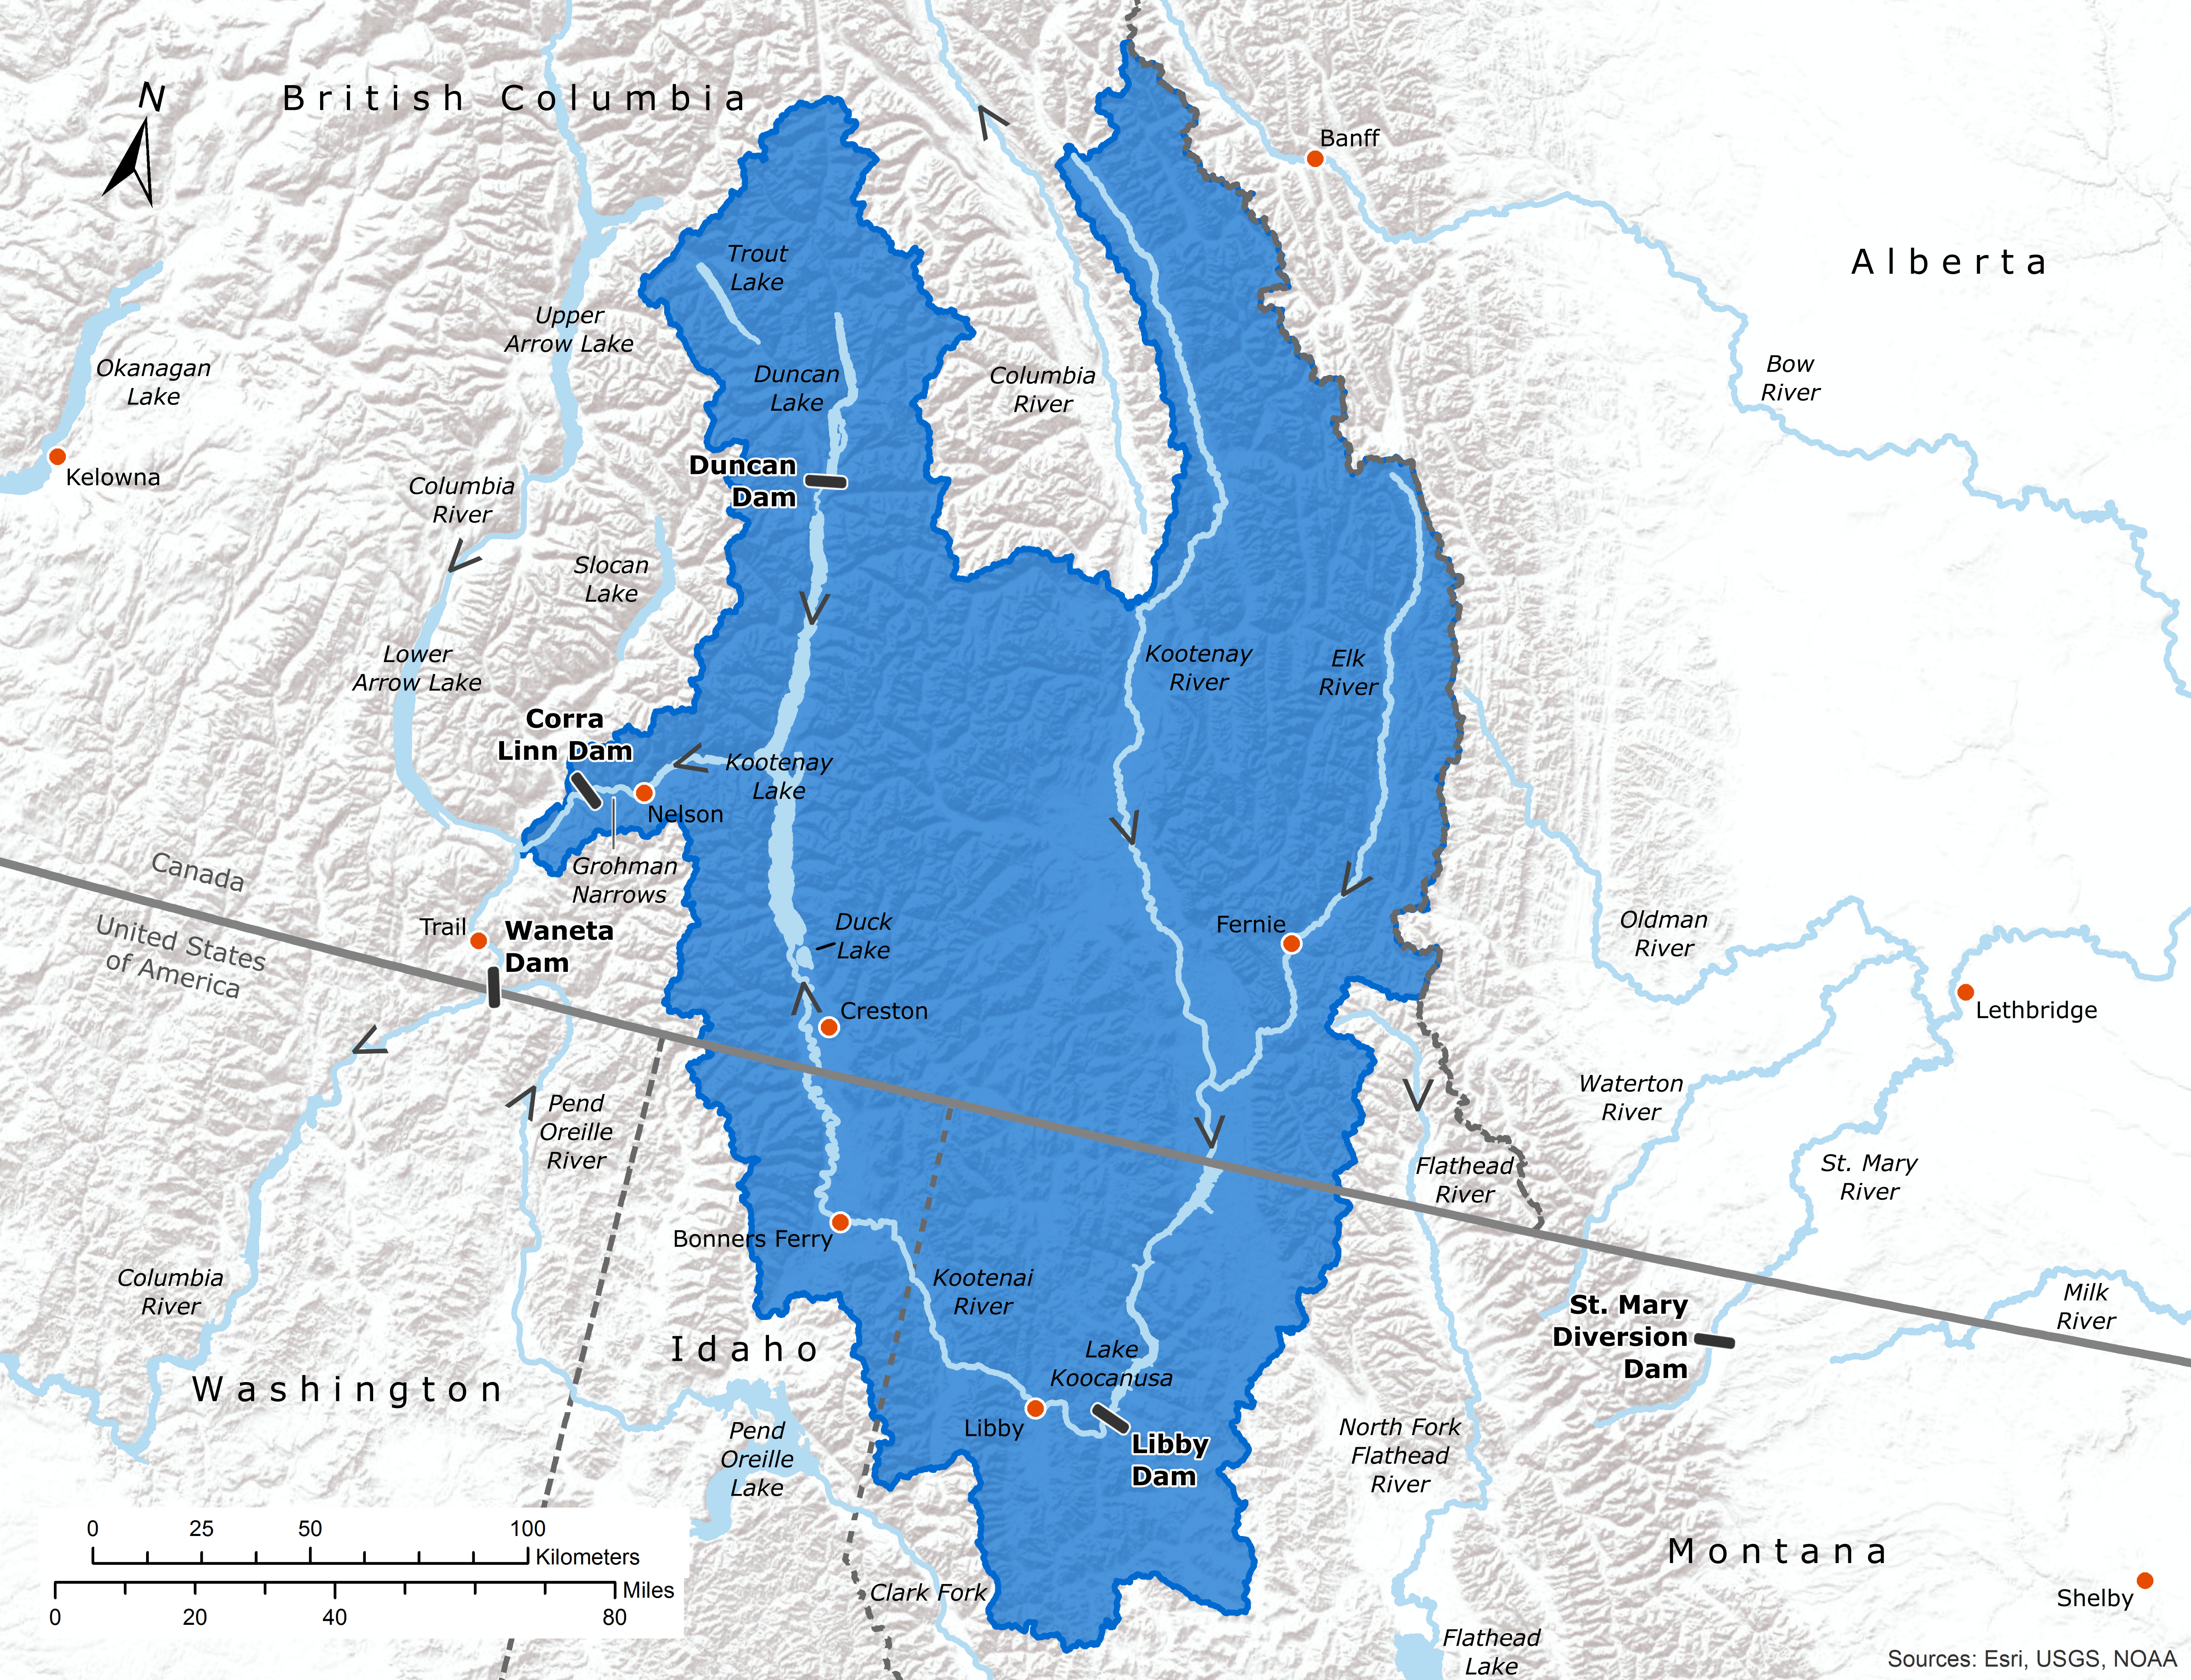 Map of the Kootenay River Basin